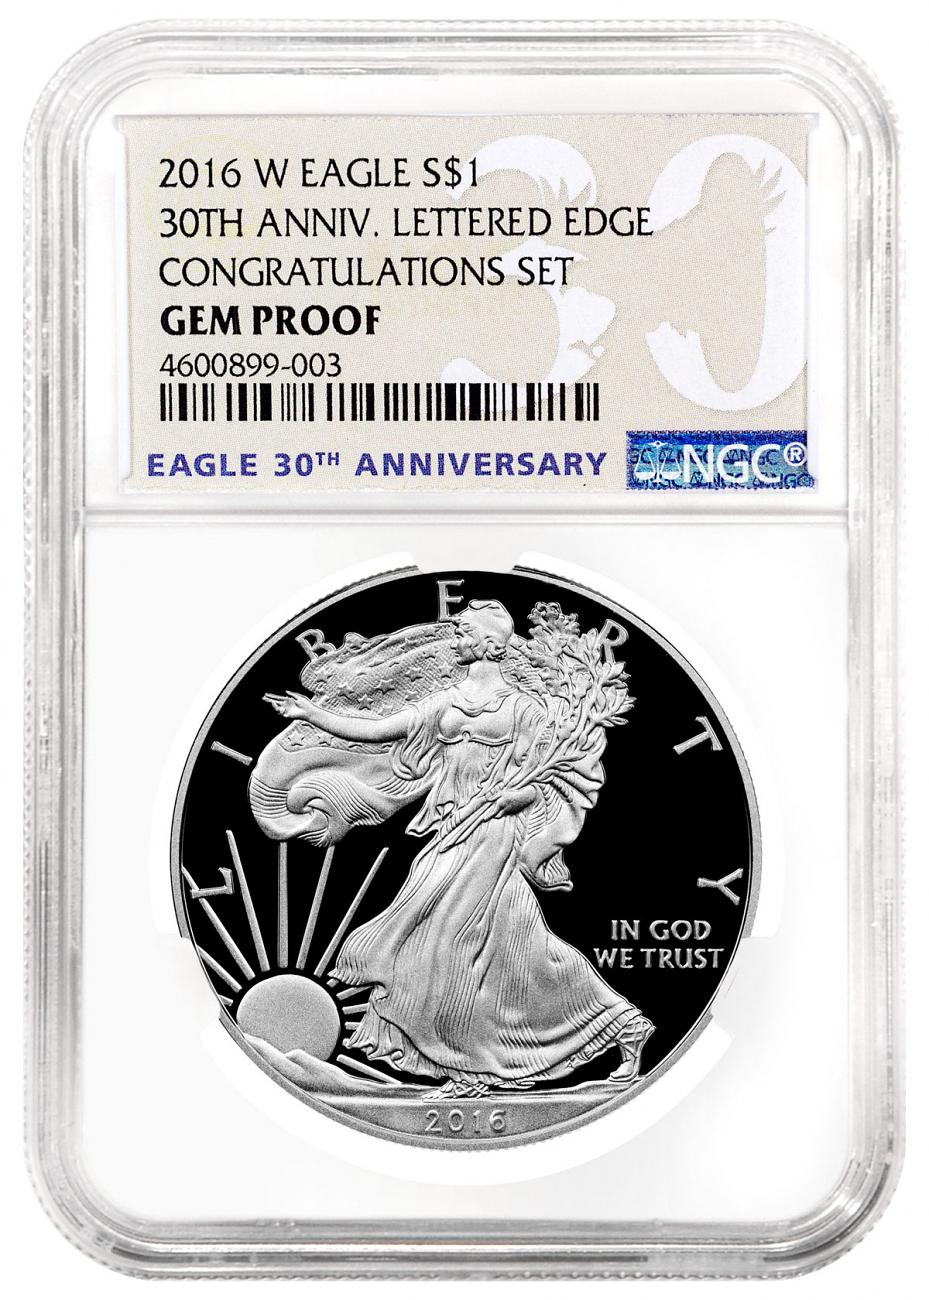 2016-W Proof American Silver Eagle Congratulations Set NGC GEM Proof 30th Anniversary Label